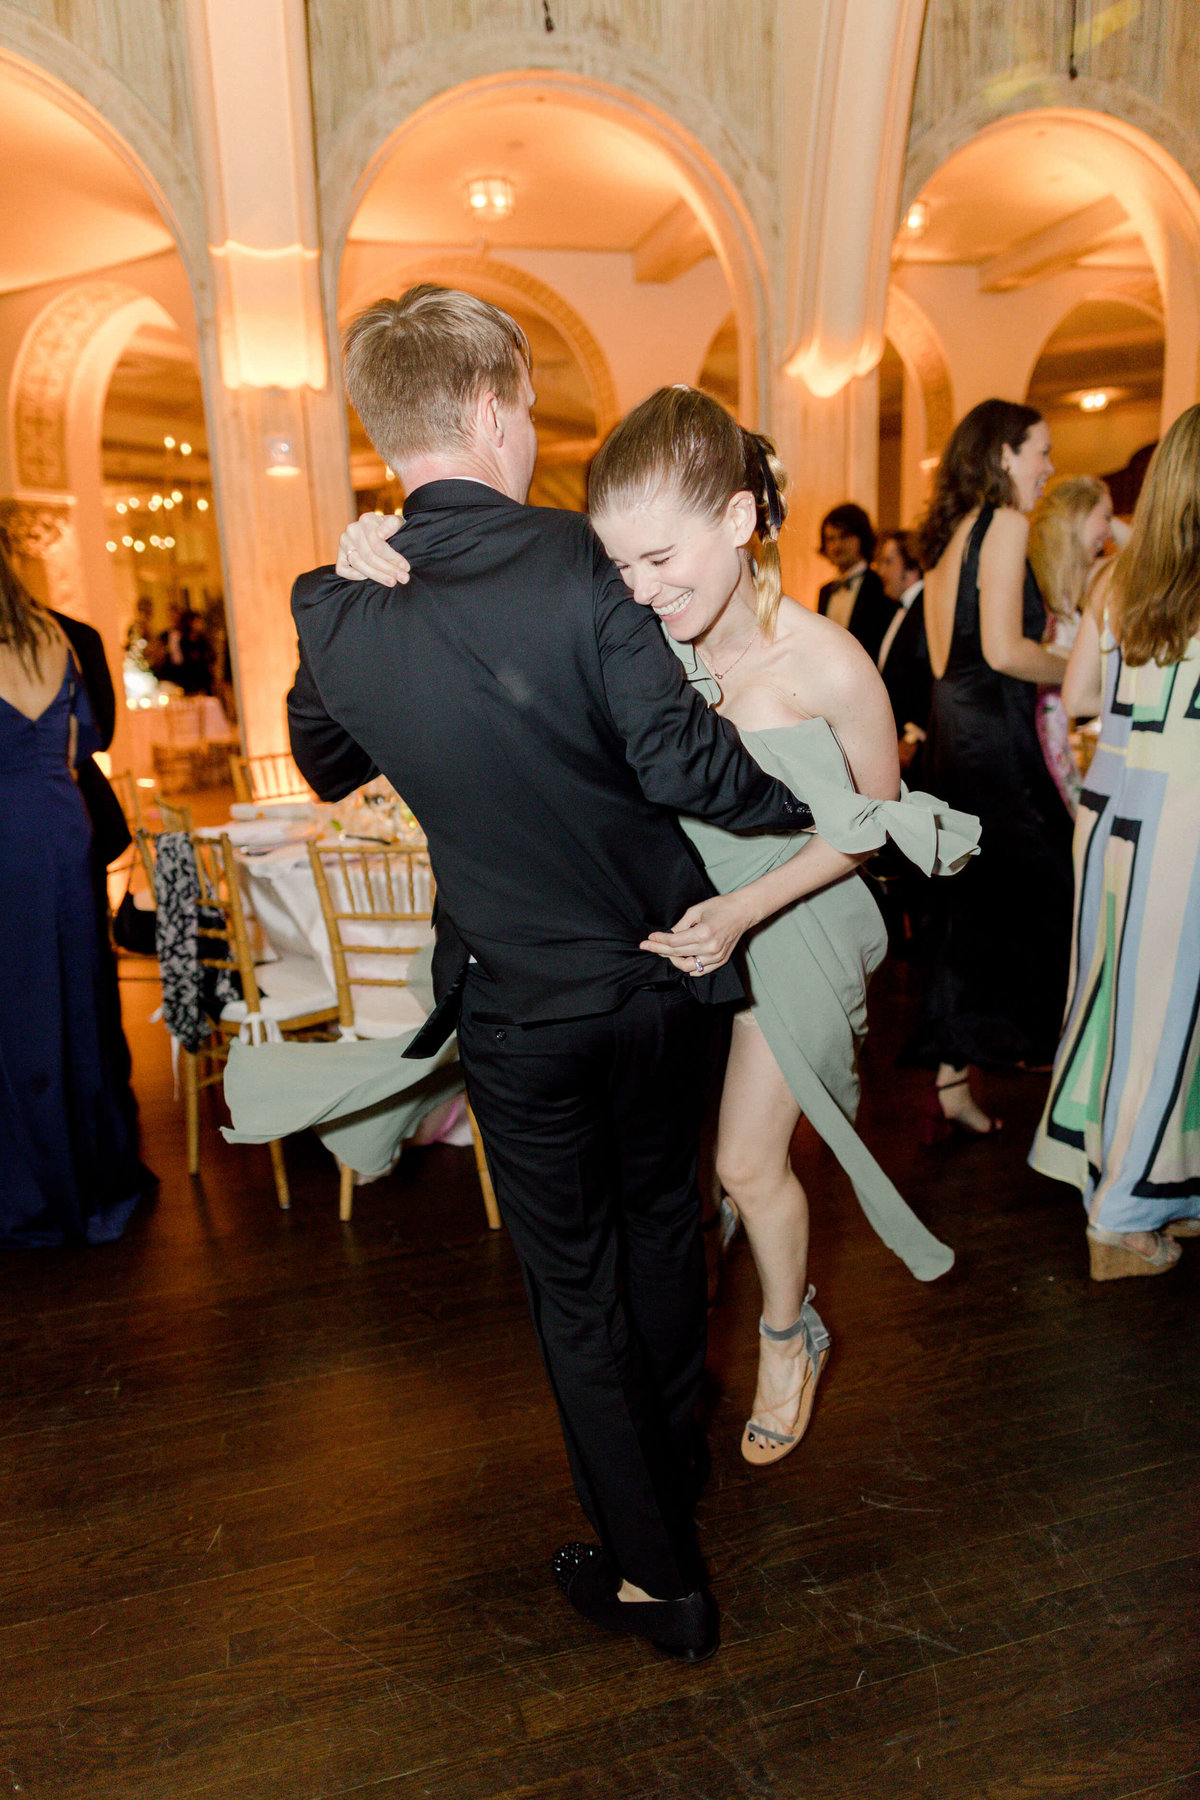 60-KTMerry-weddings-celebrity-kate-mara-dancing